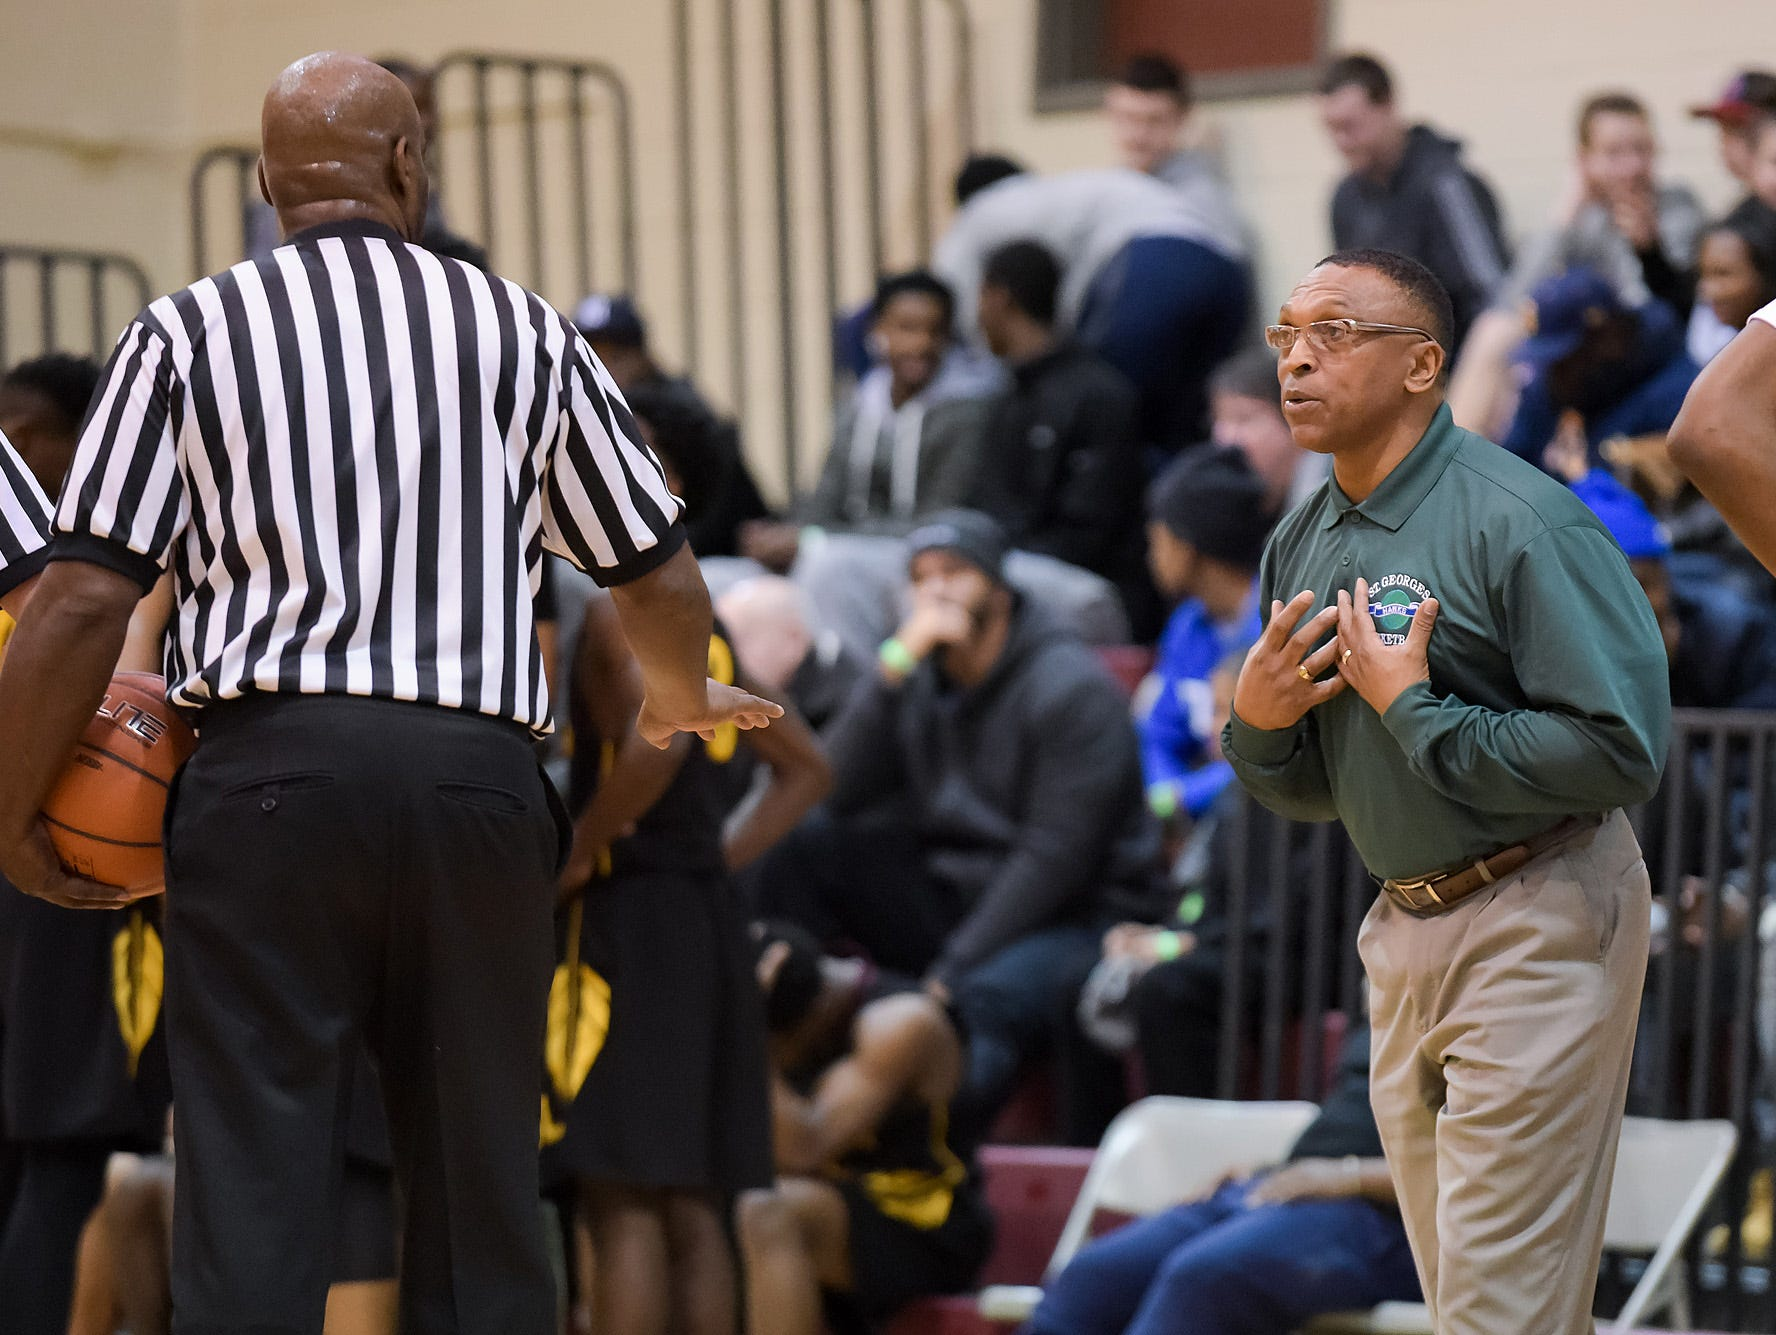 Rod Griffin, St. Georges head coach, has some words with the referees.